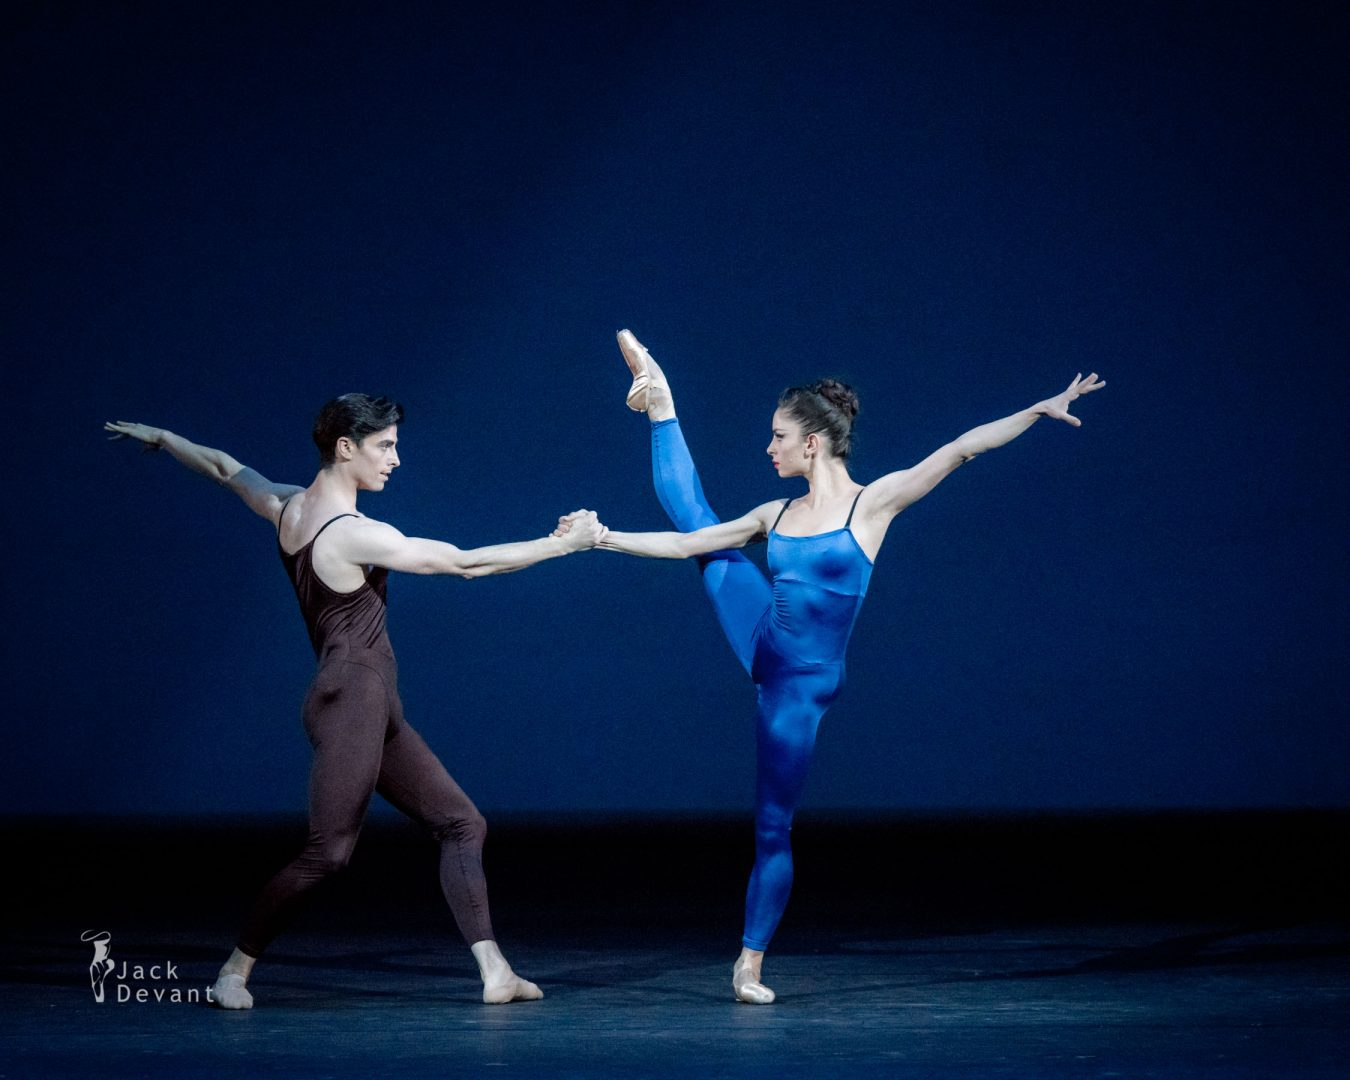 Dores Andre, Joseph Walsh in Variations for Two Couples 6